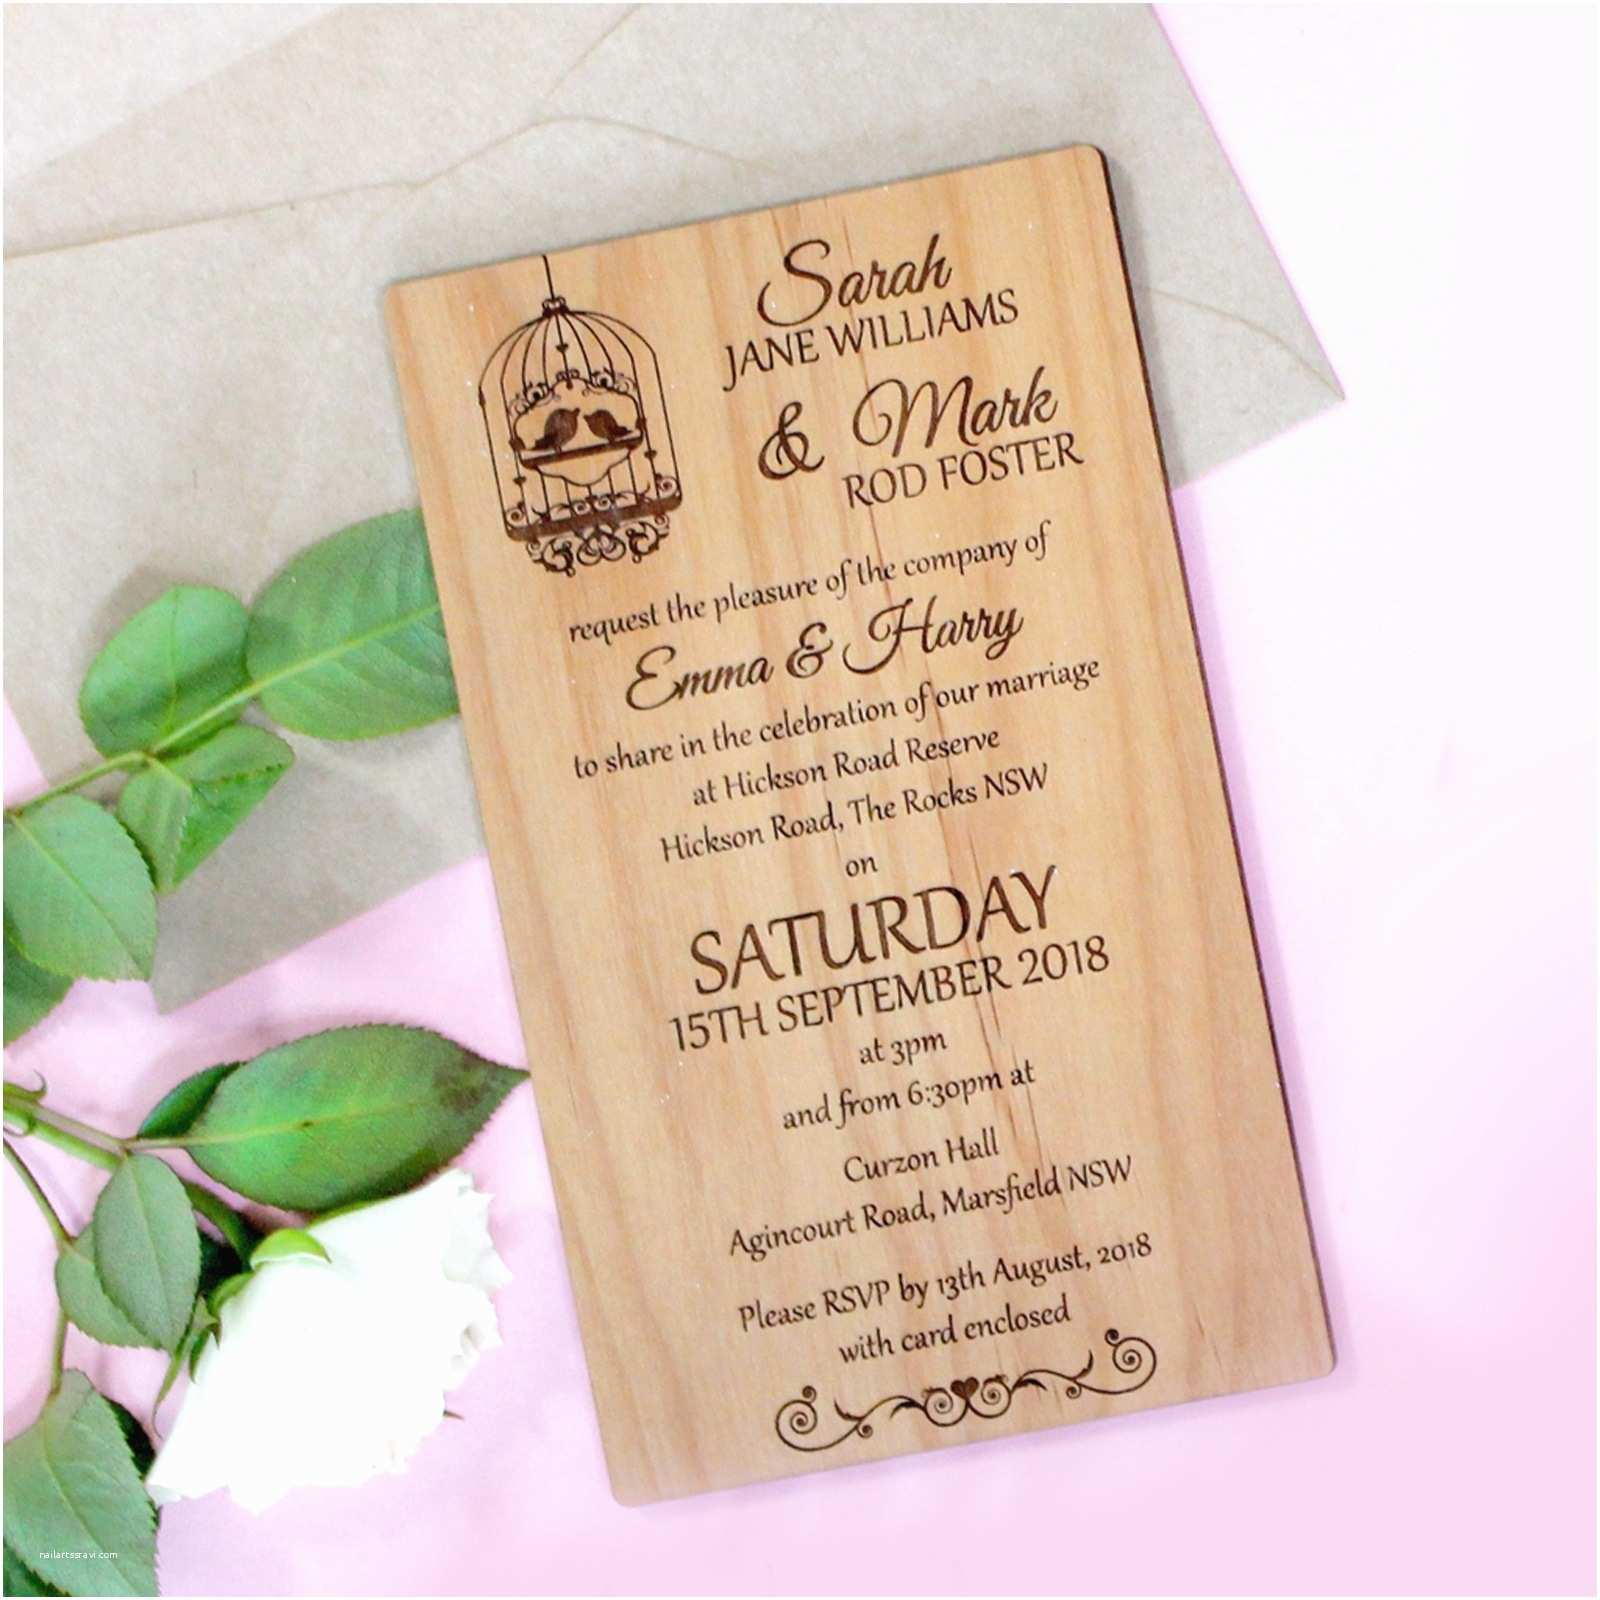 Engraved Wedding Invitations 11b Engraved Wooden Wedding Invitation Package Wooden